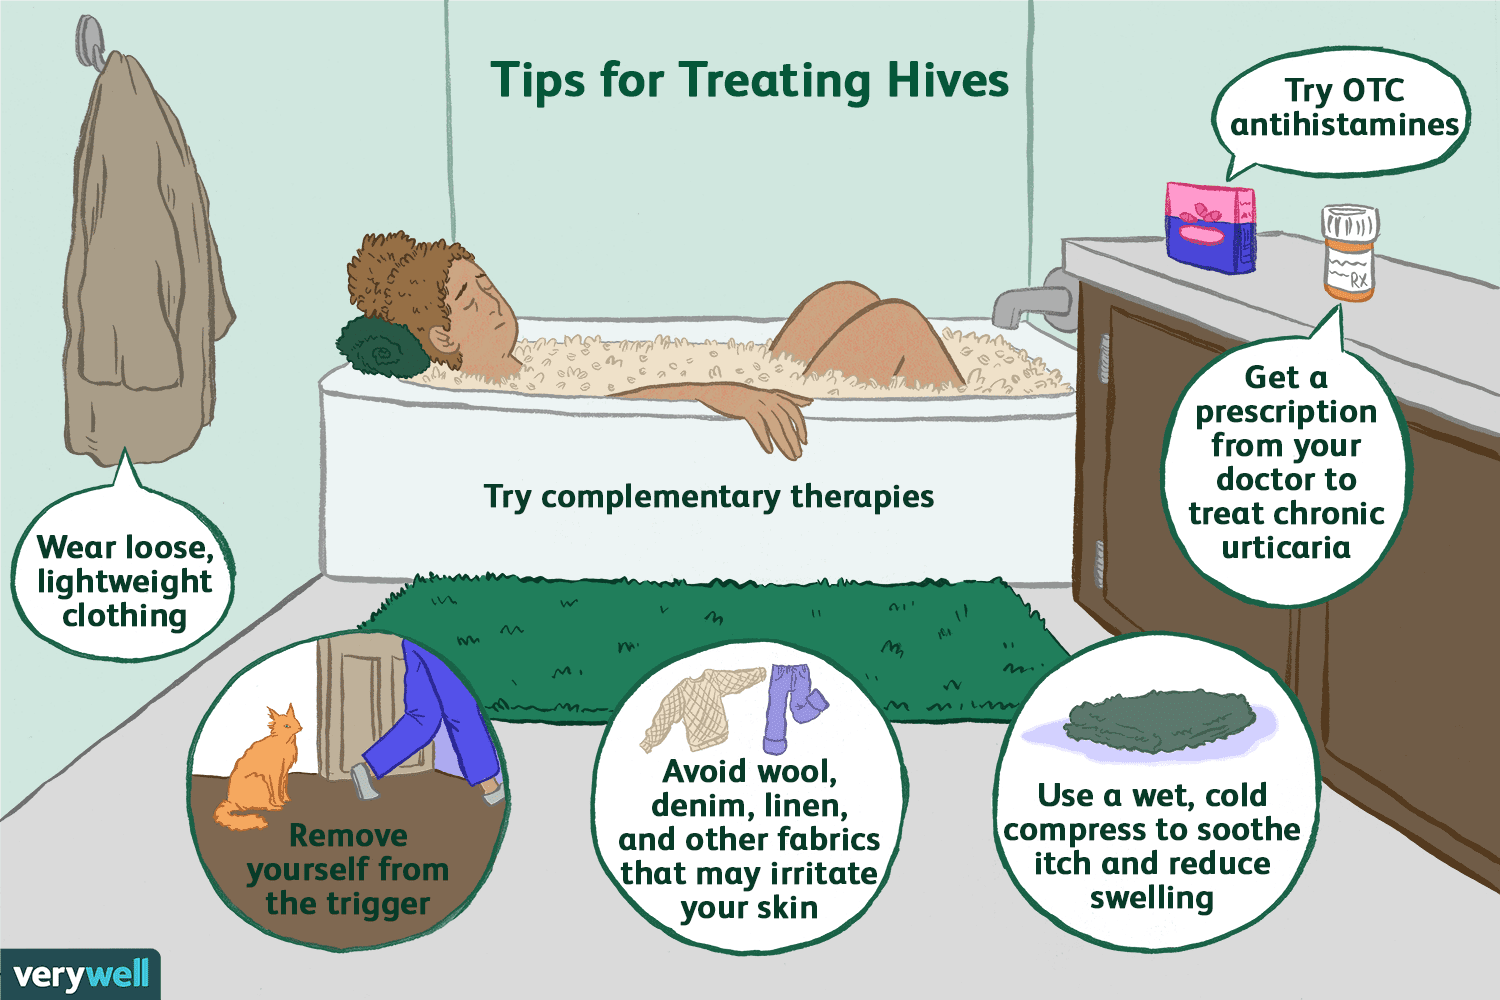 How You Should Treat Hives Effectively Urticaria Complementary